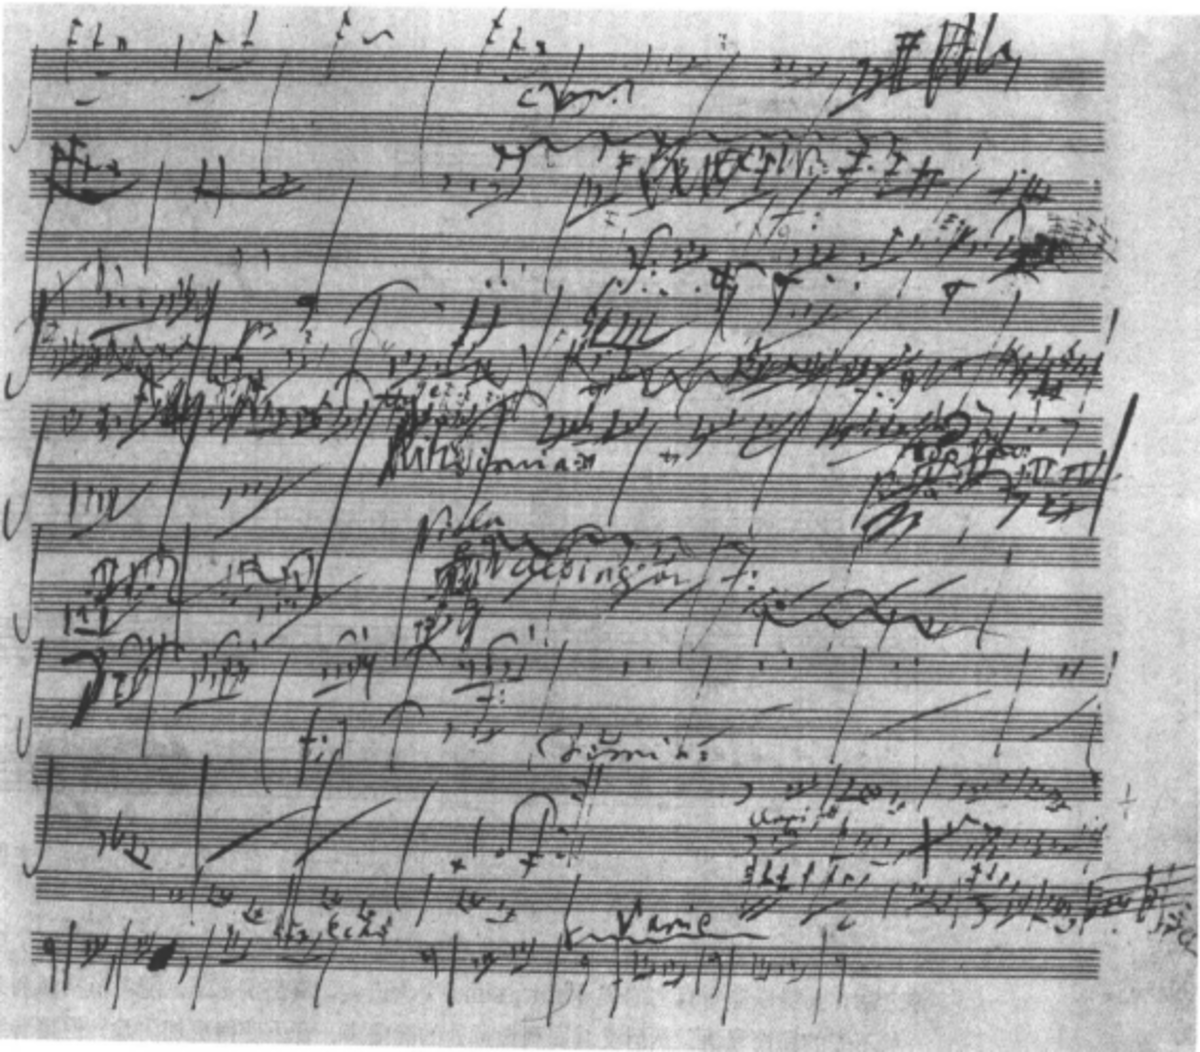 Original score to Beethoven's 6th Symphony